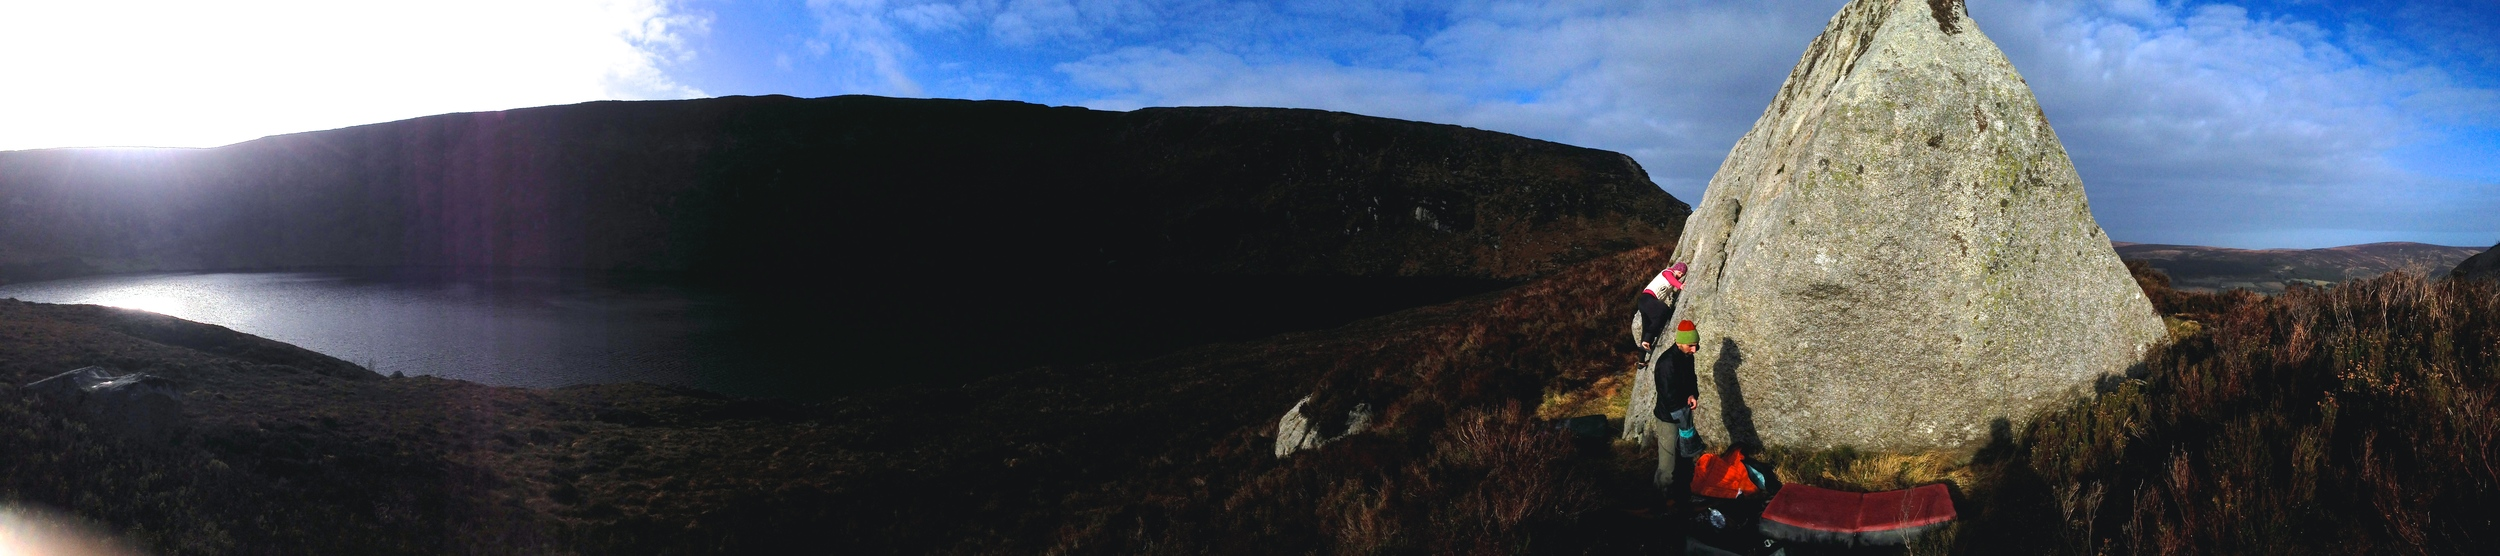 The original panoramic with only a slight tweak to the exposure to brighten....